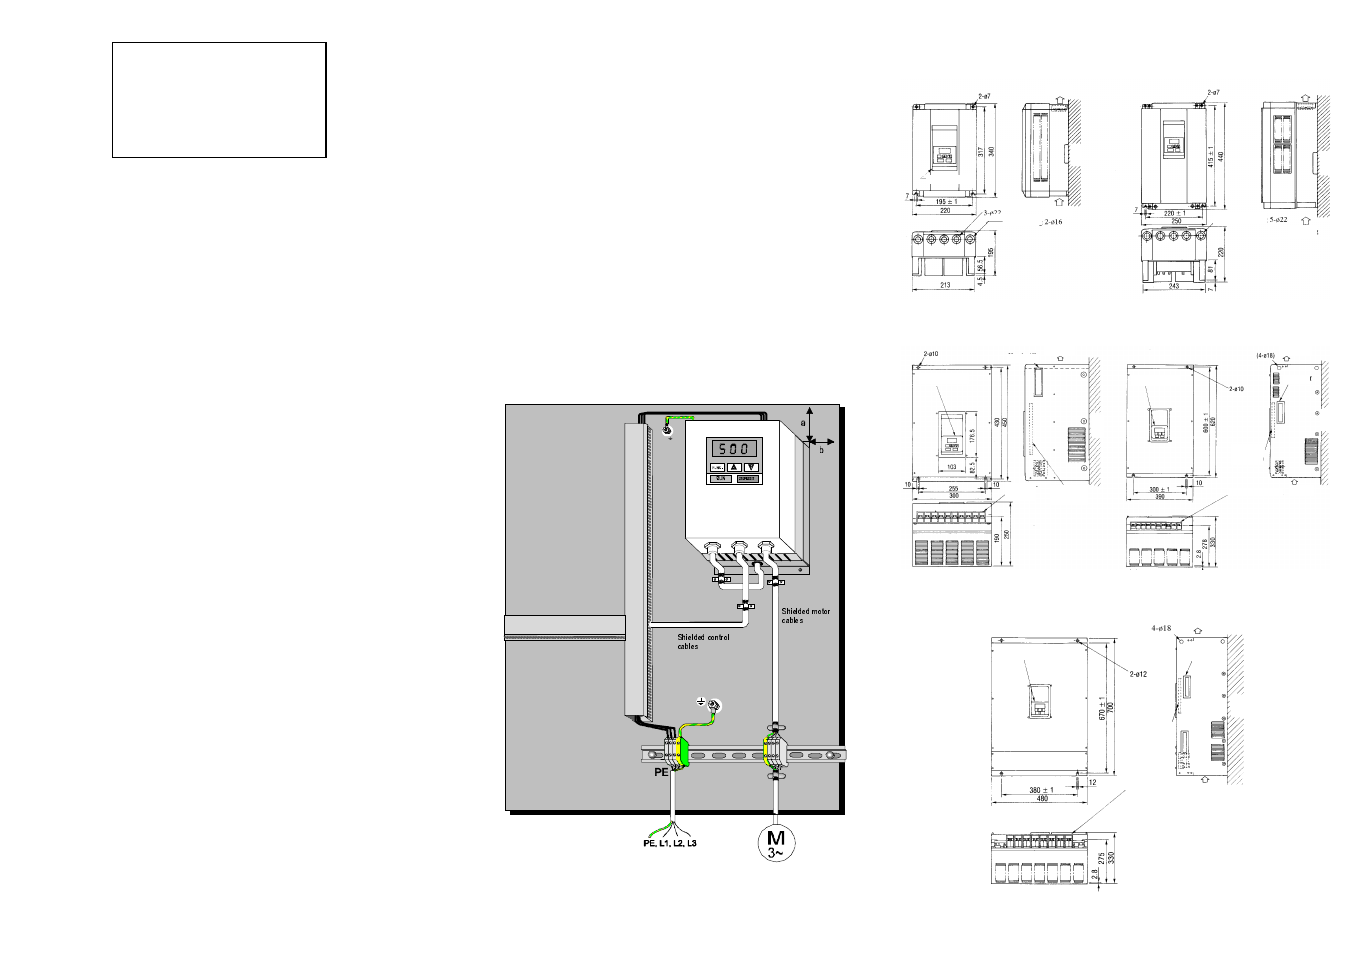 Hitachi Inverter J300 User Manual Page 5 6 Control Box Wiring Diagram